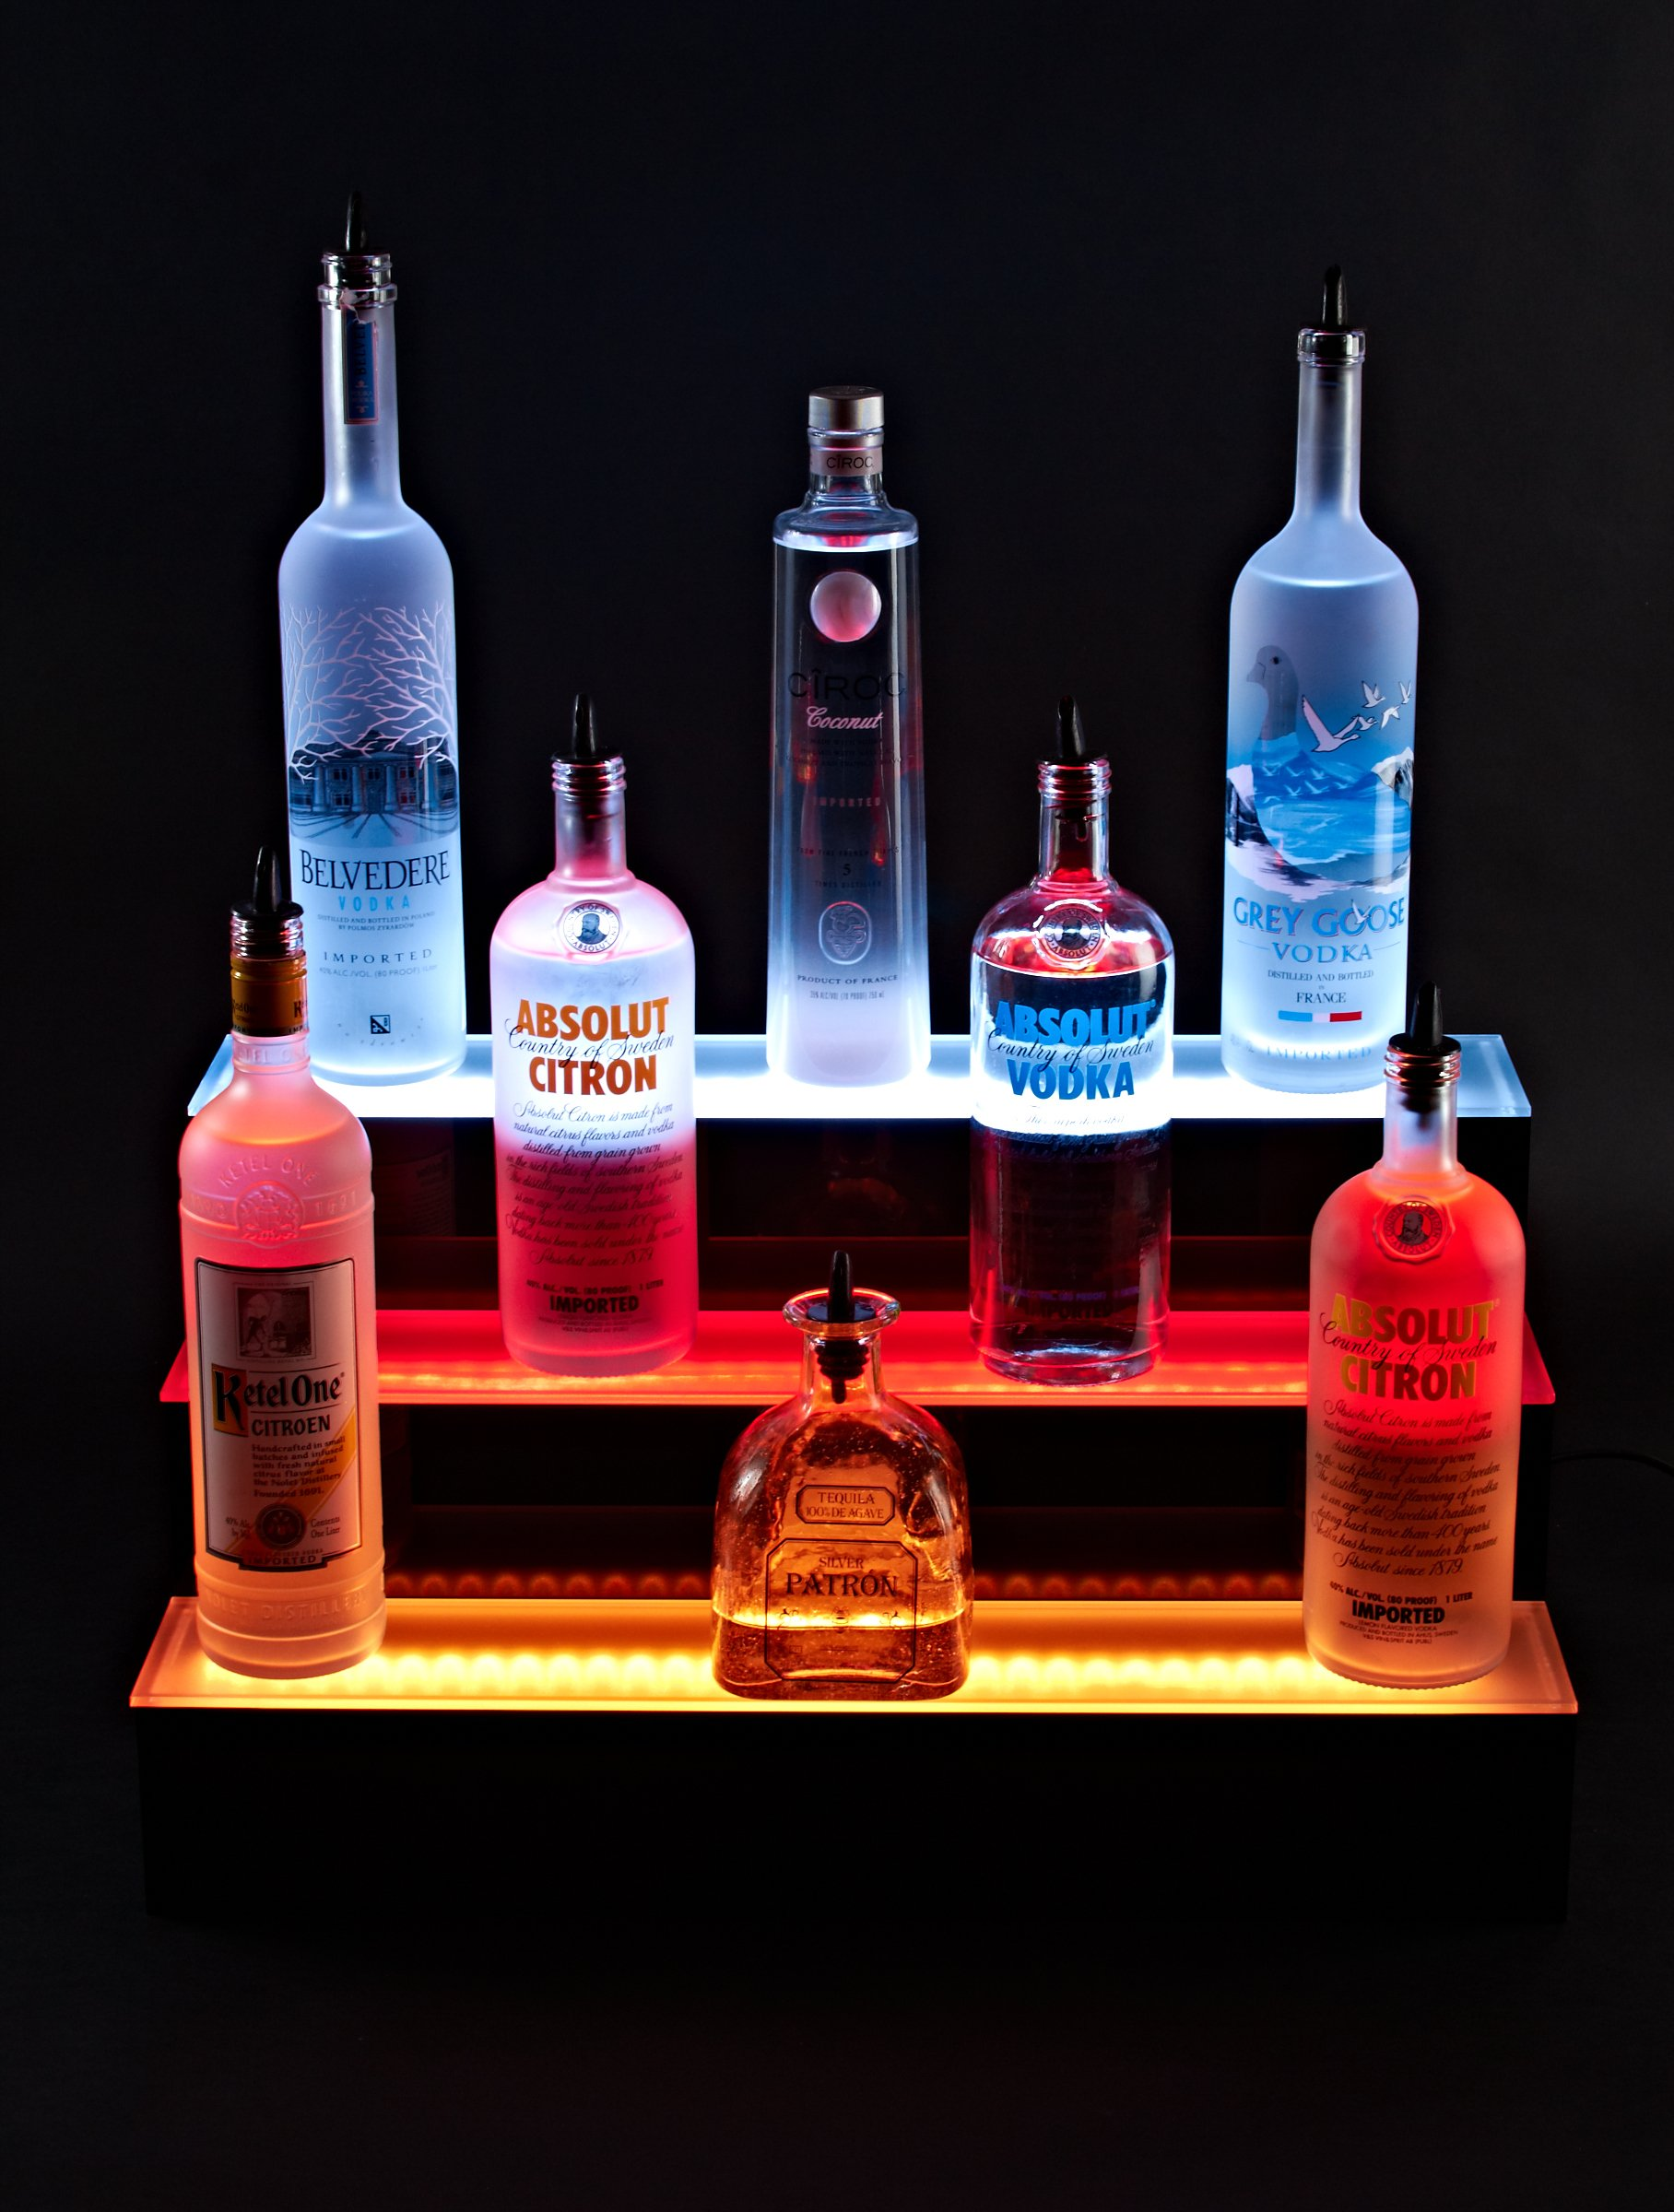 24'' inch 3 Tier Lighted Liquor Shelves Bottle Display LED |Home bar Lights by Armana Productions (Image #1)